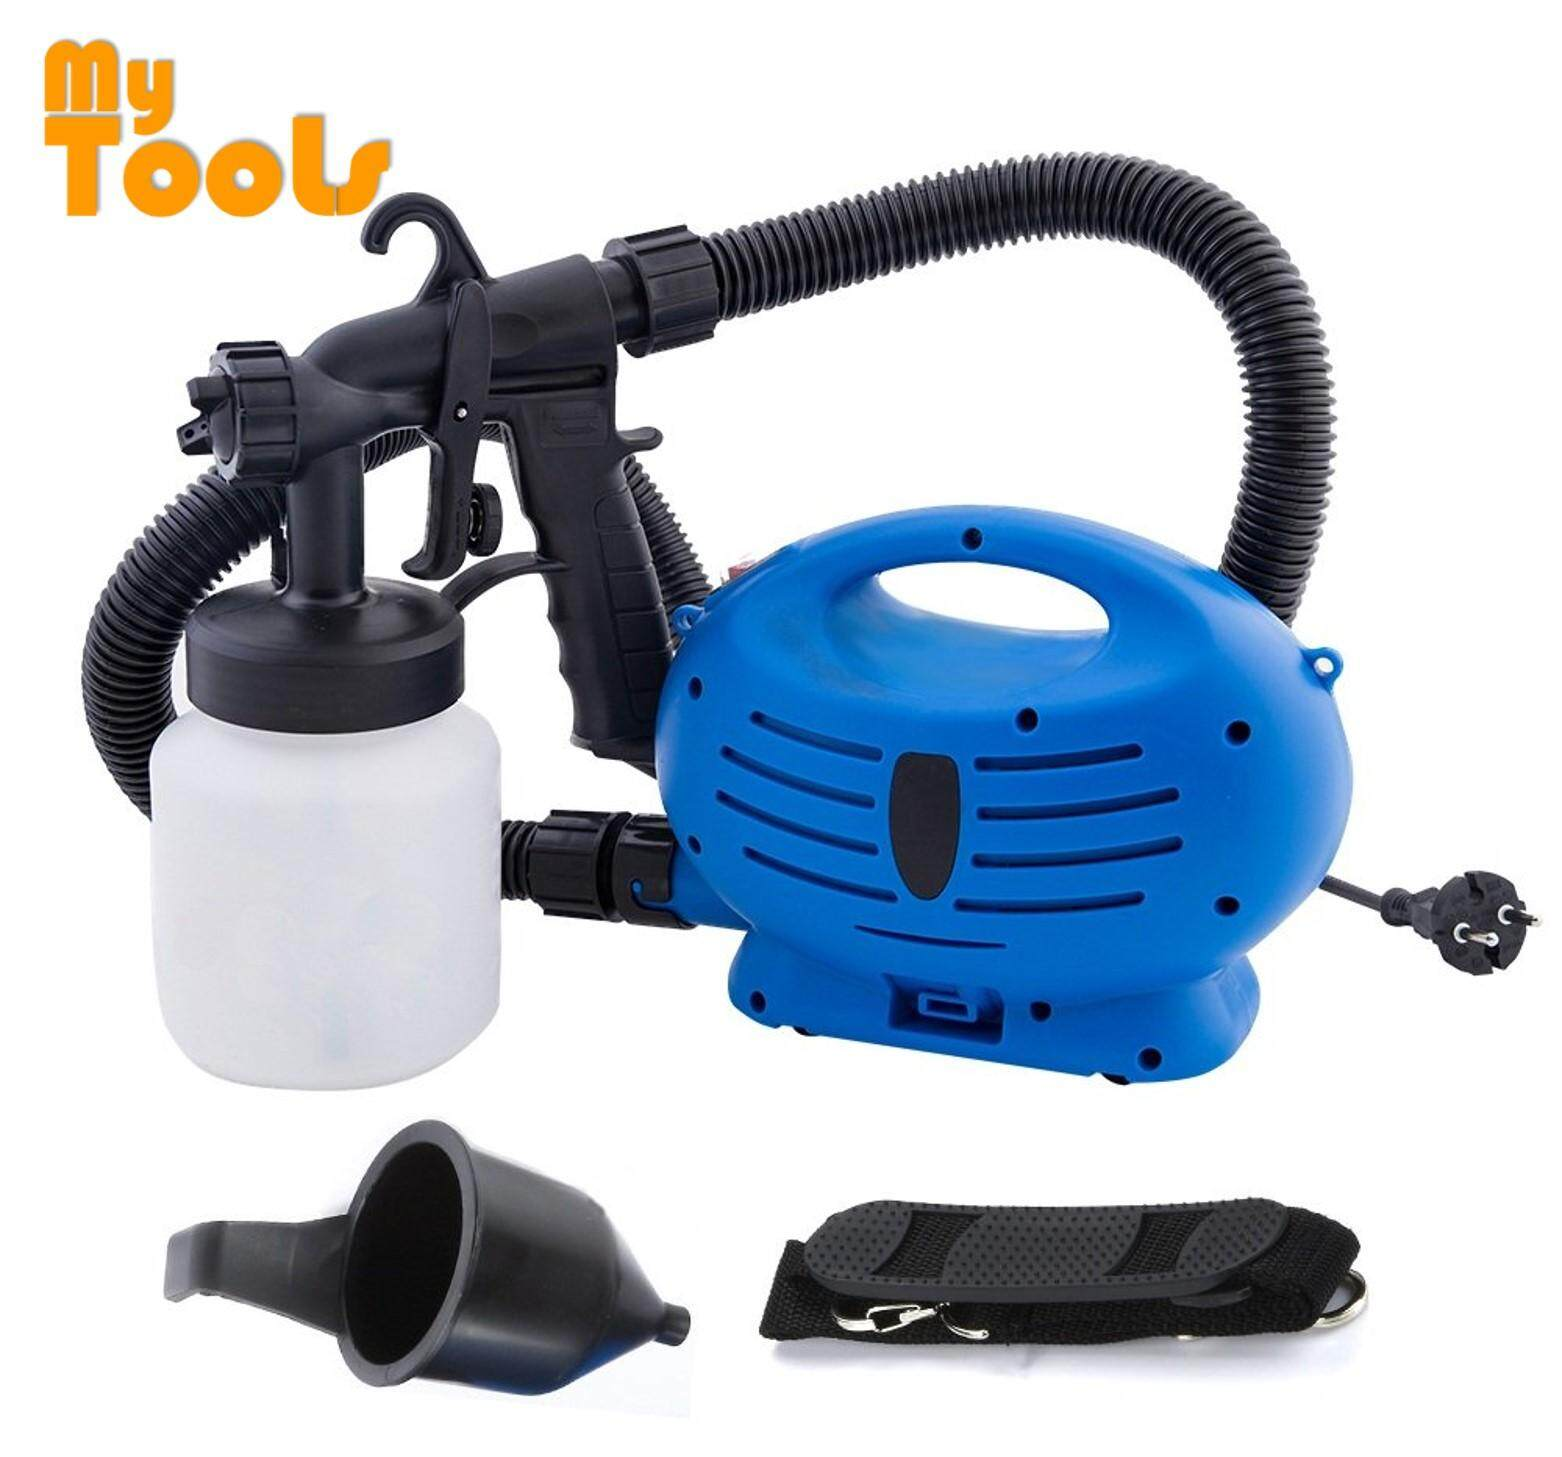 Electric Paint Sprayer with 3 Ways Zoom Spraying Automatic Paint Sprayer 650 watts